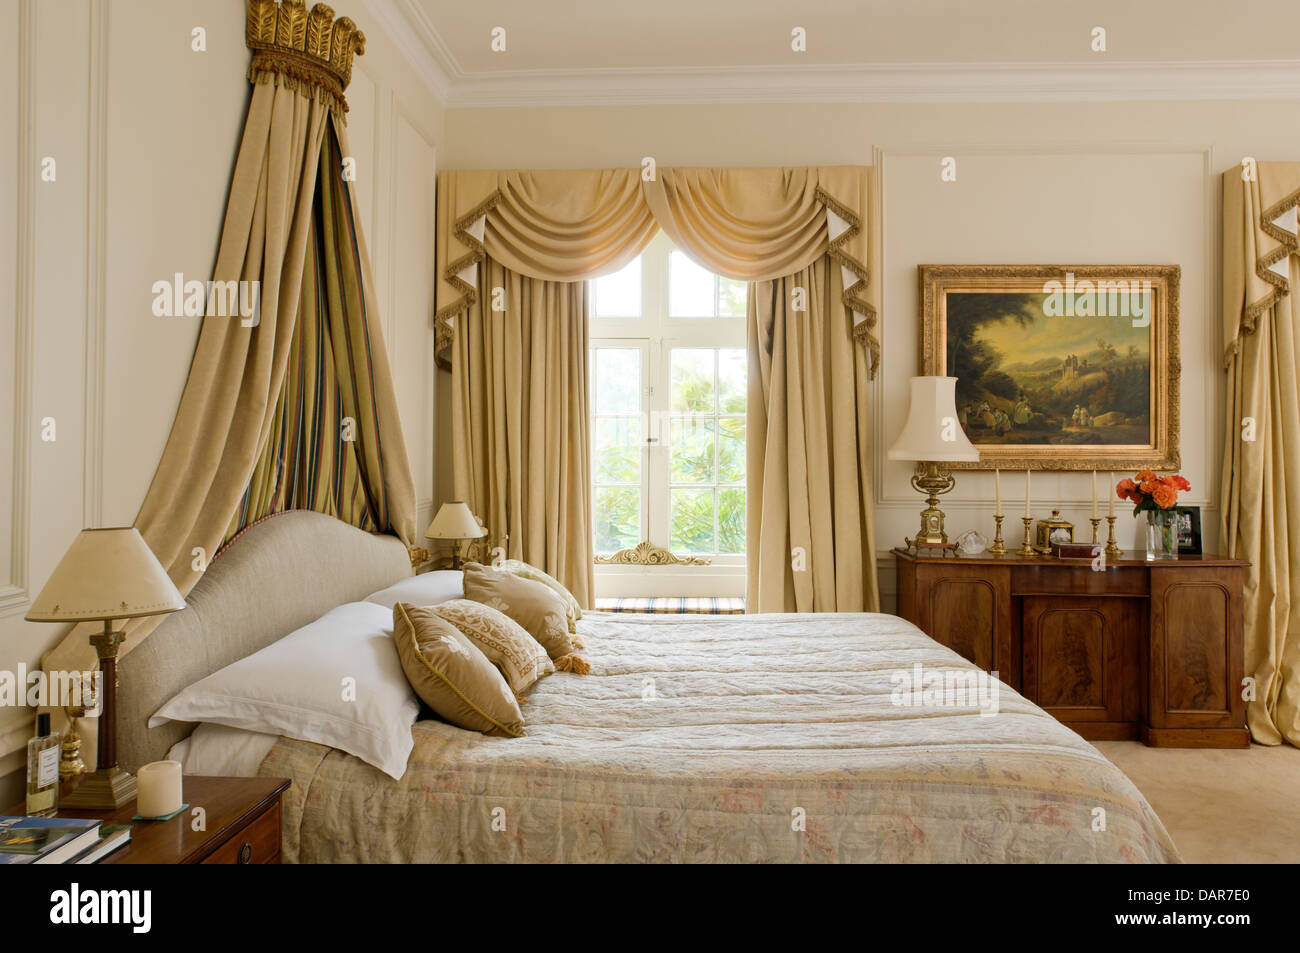 Pale Bedroom Bed With Gilt Coronet In Bedroom With Full Length Pale Gold